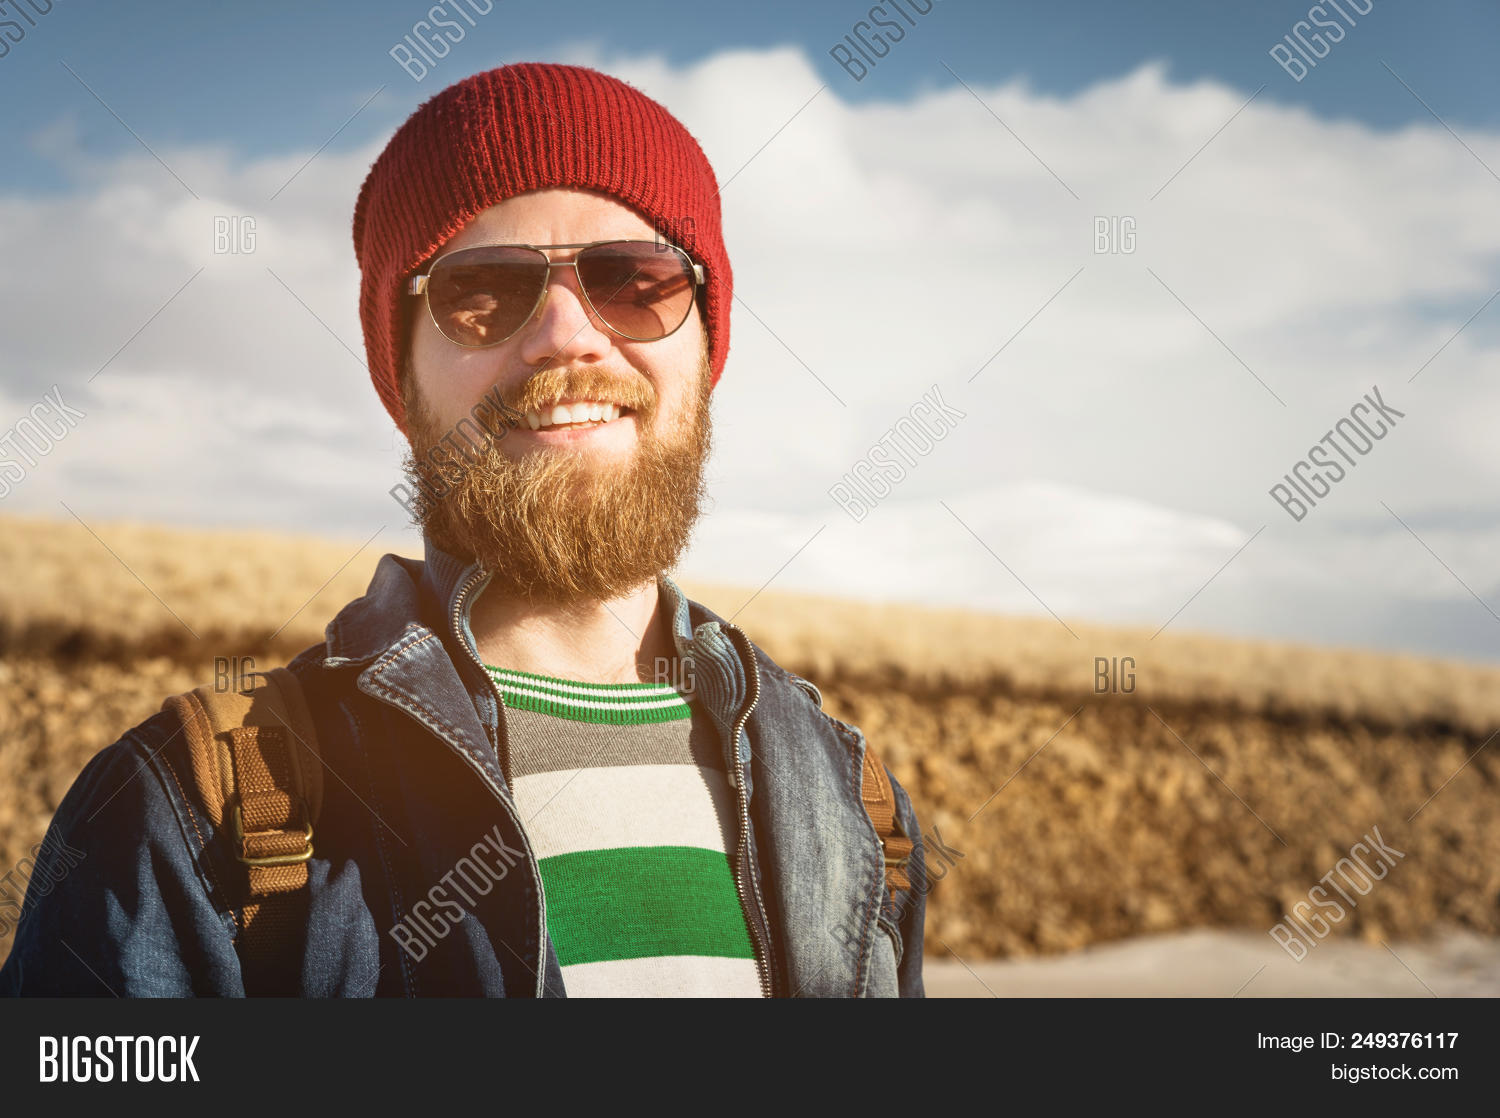 Portrait Of A Young Hipster Man Wearing Sunglasses And A Hat. A Smiling Bearded  Man 2f43f824bd84